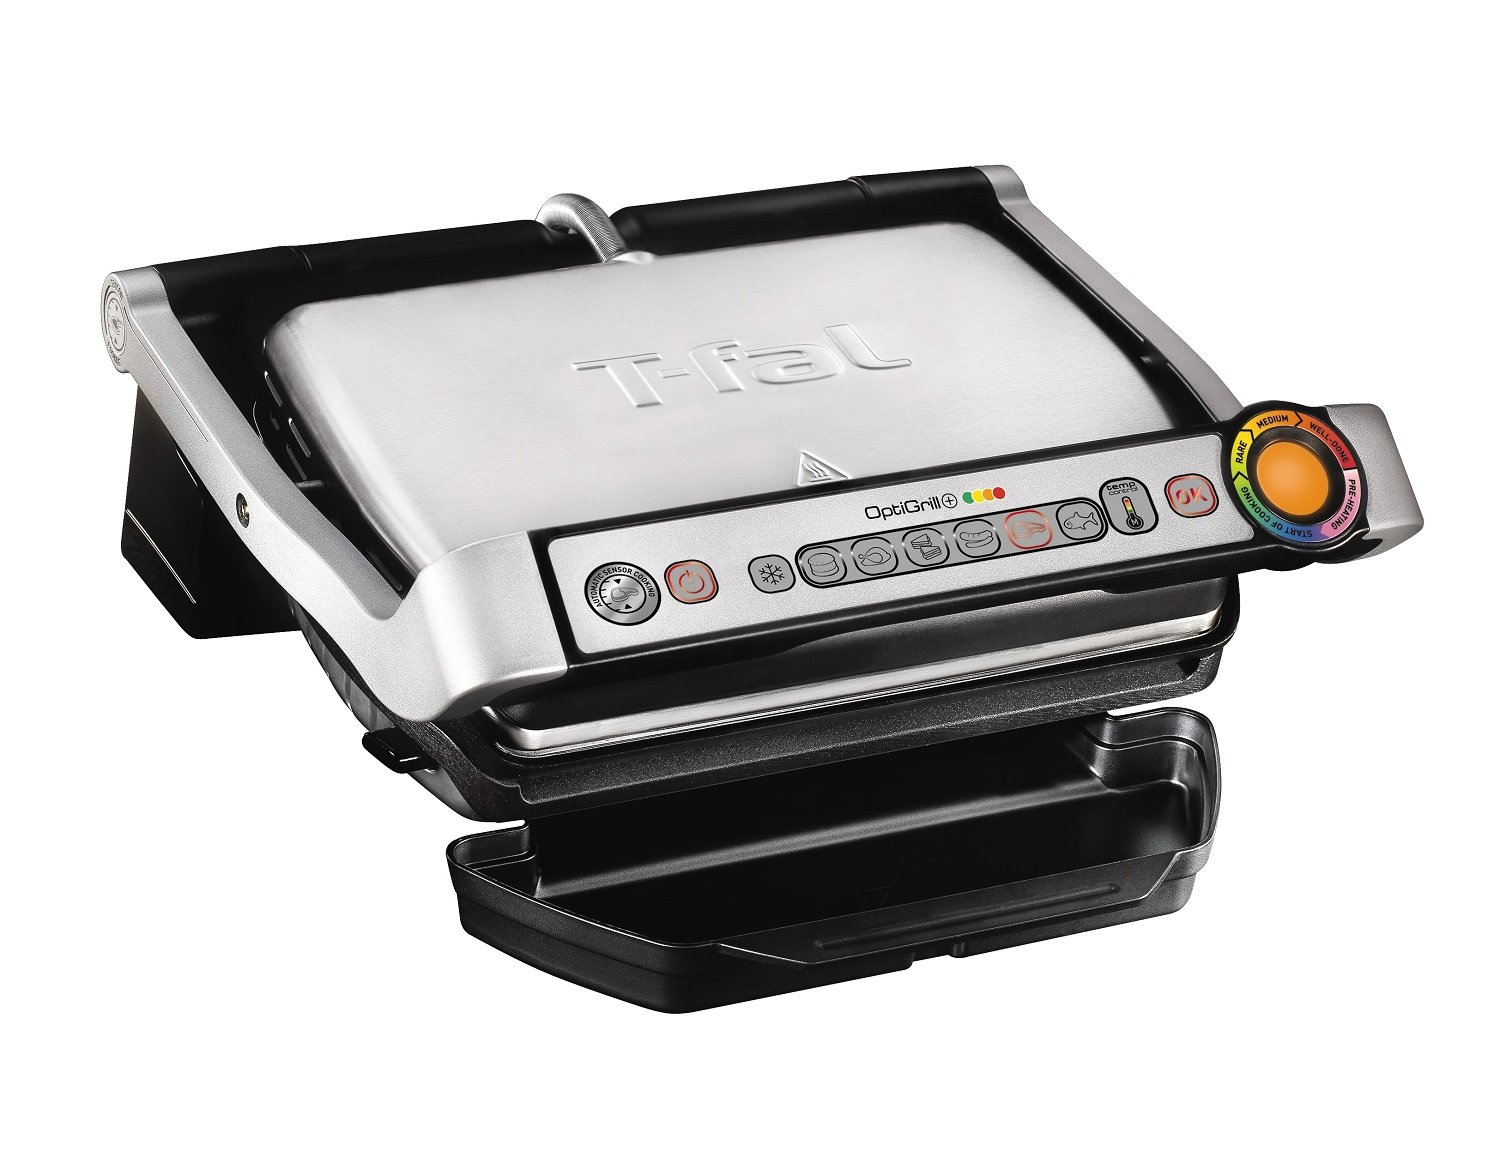 T-fal GC722D53 1800W OptiGrill XL Stainless Steel Large Indoor Electric Grill with Removable and Dishwasher Safe Plates, Silver 7211002168